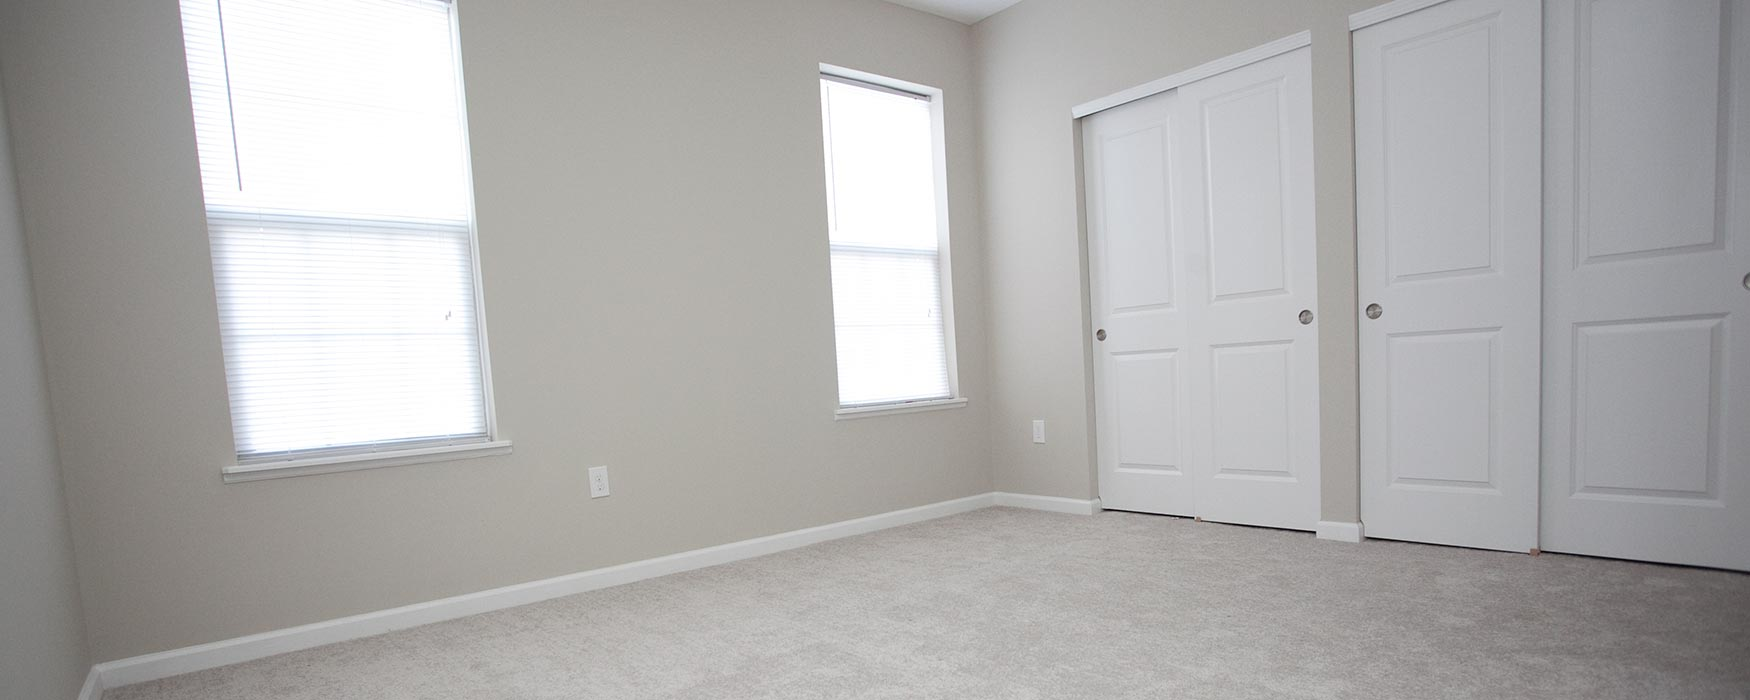 LC Preserve Crossing | Gahanna Apartments | Greystone I Bedroom